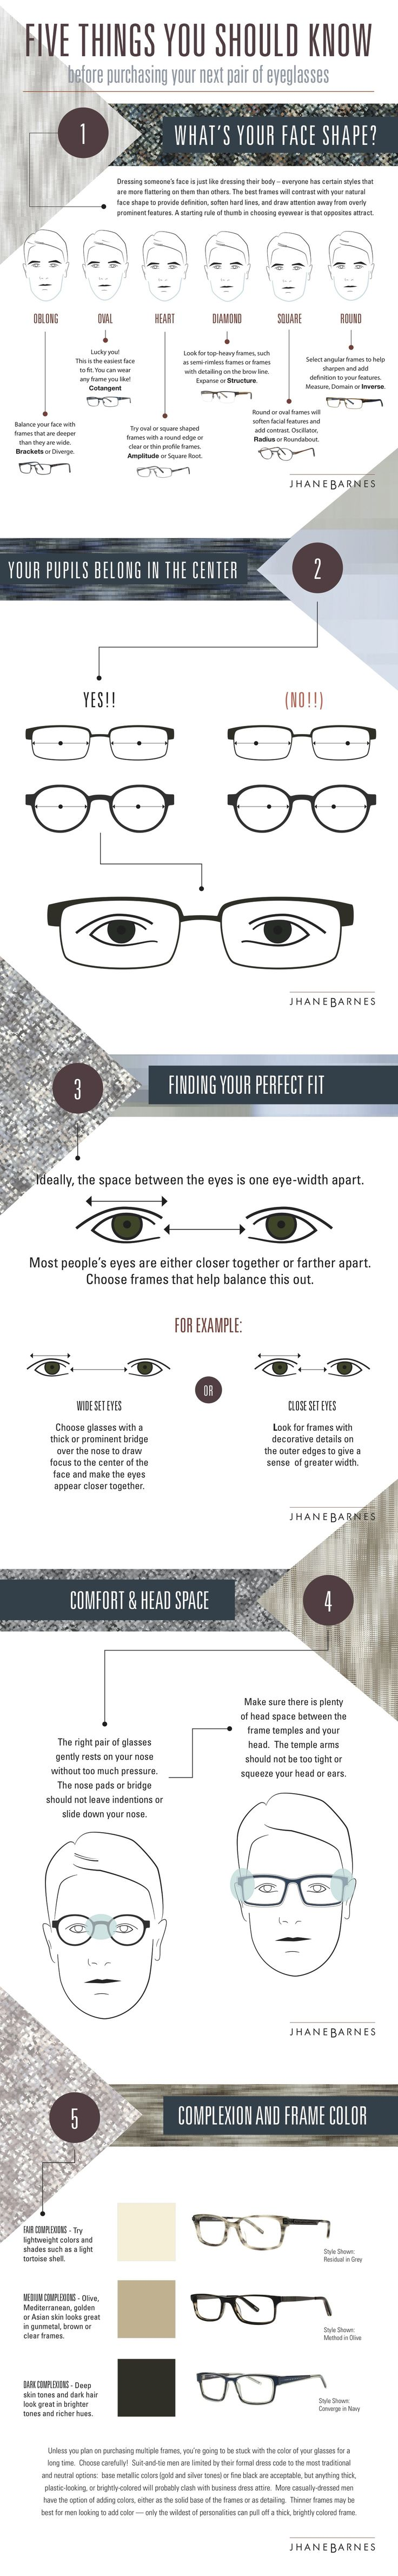 5 things you should know before purchasing your next pair of eyeglasses